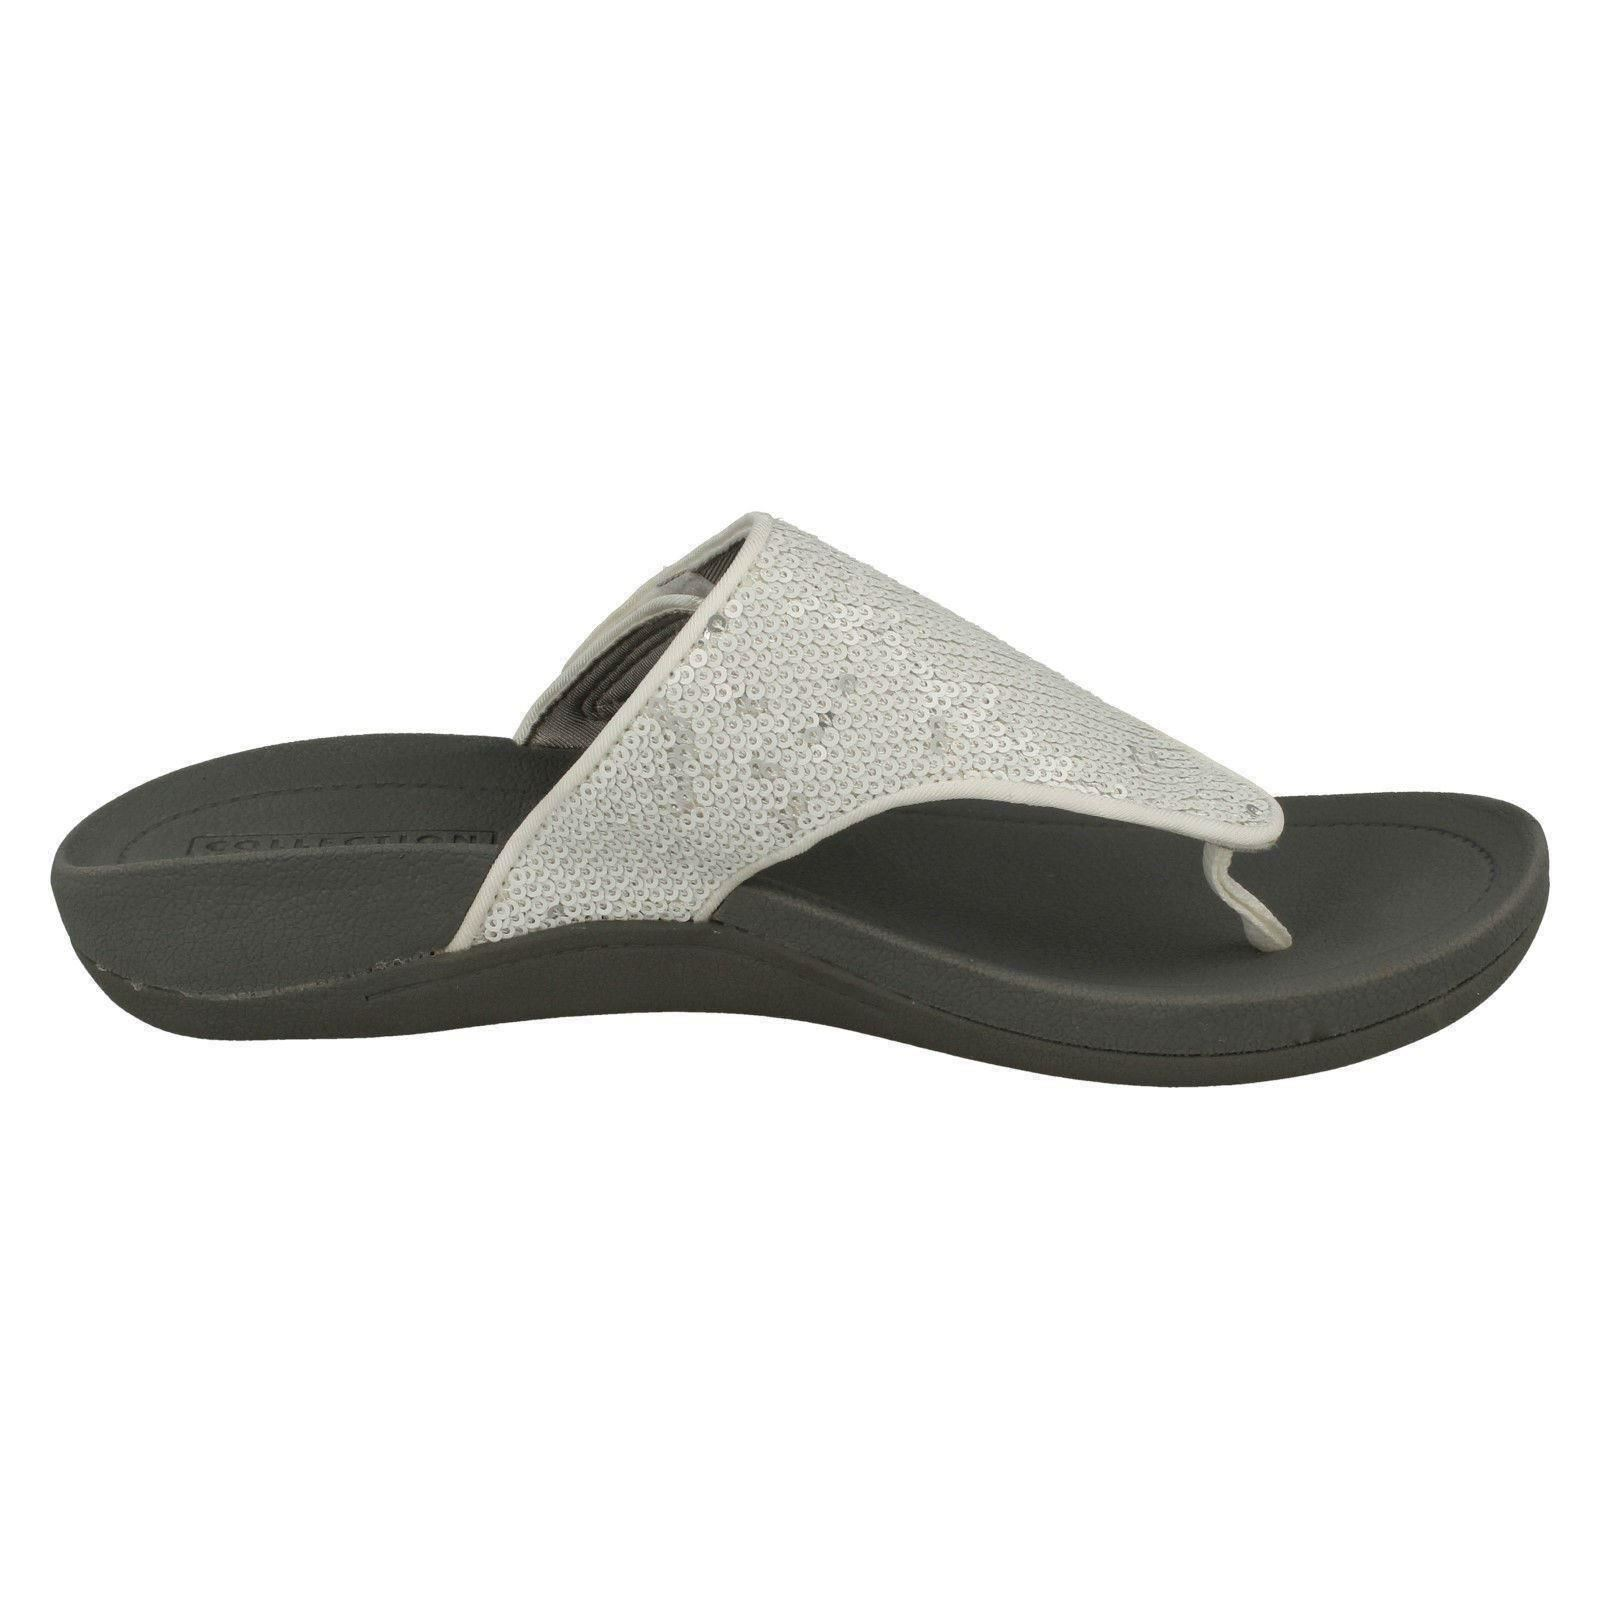 Mujer Clarks Chanclas ' pical lipson'